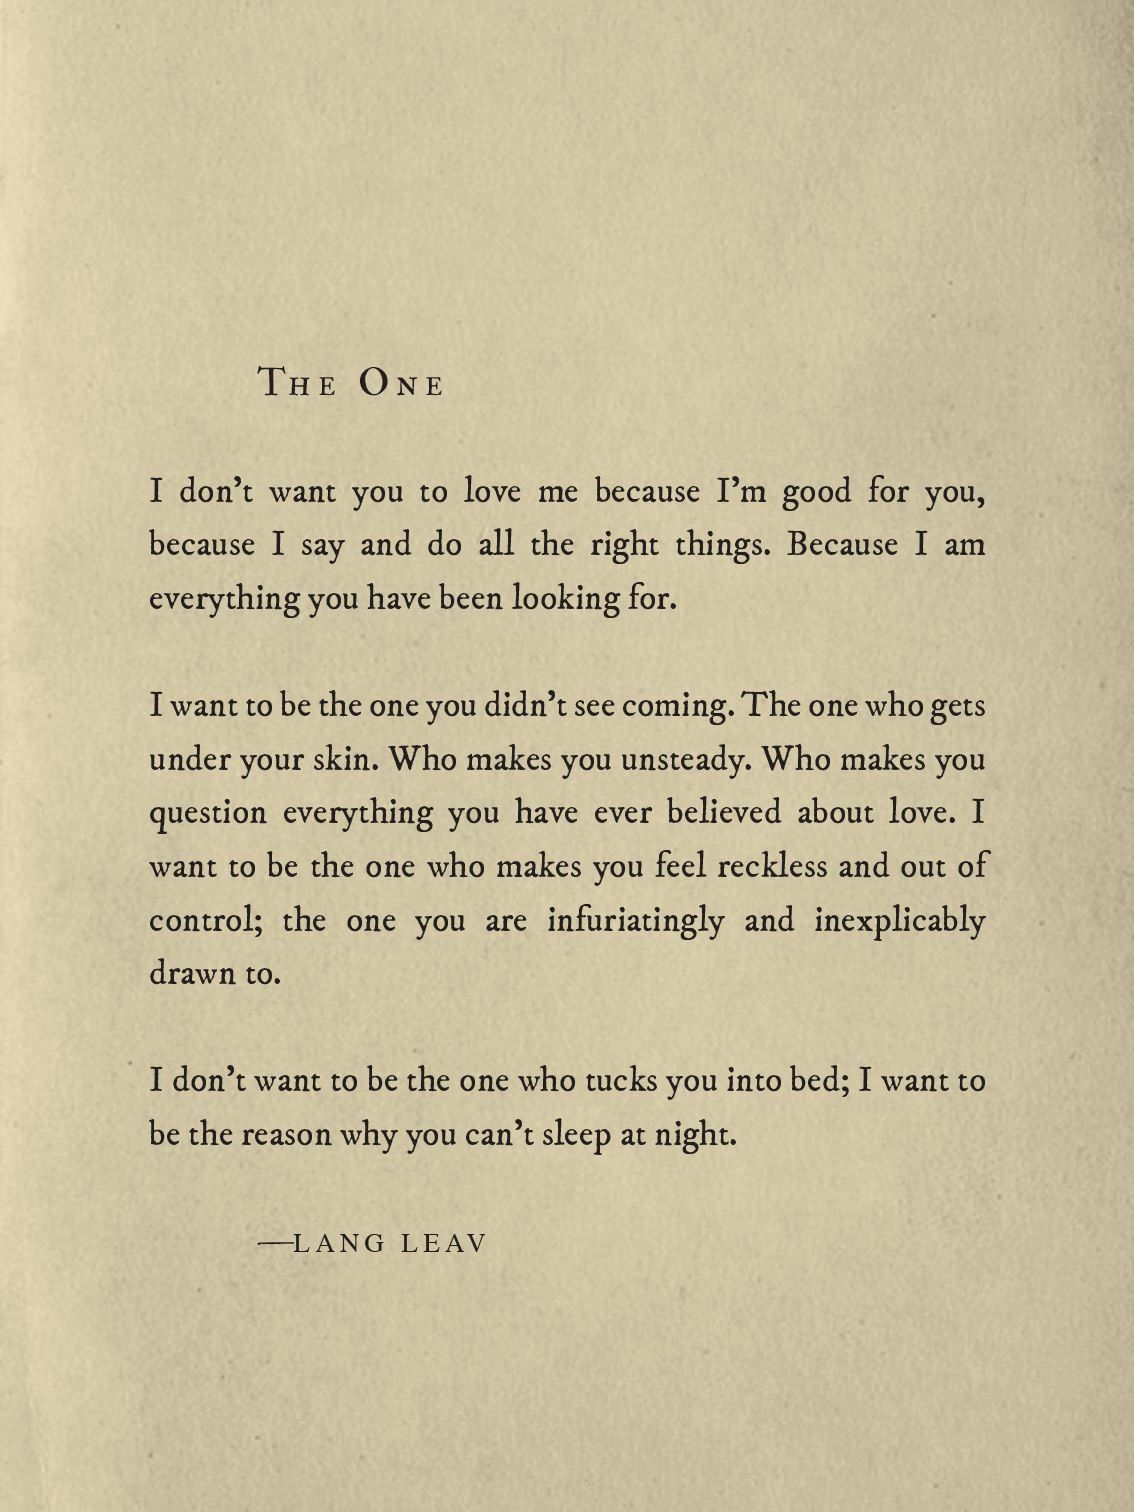 The One Lang Leav Lang Leav Michael Faudet Love Quotes